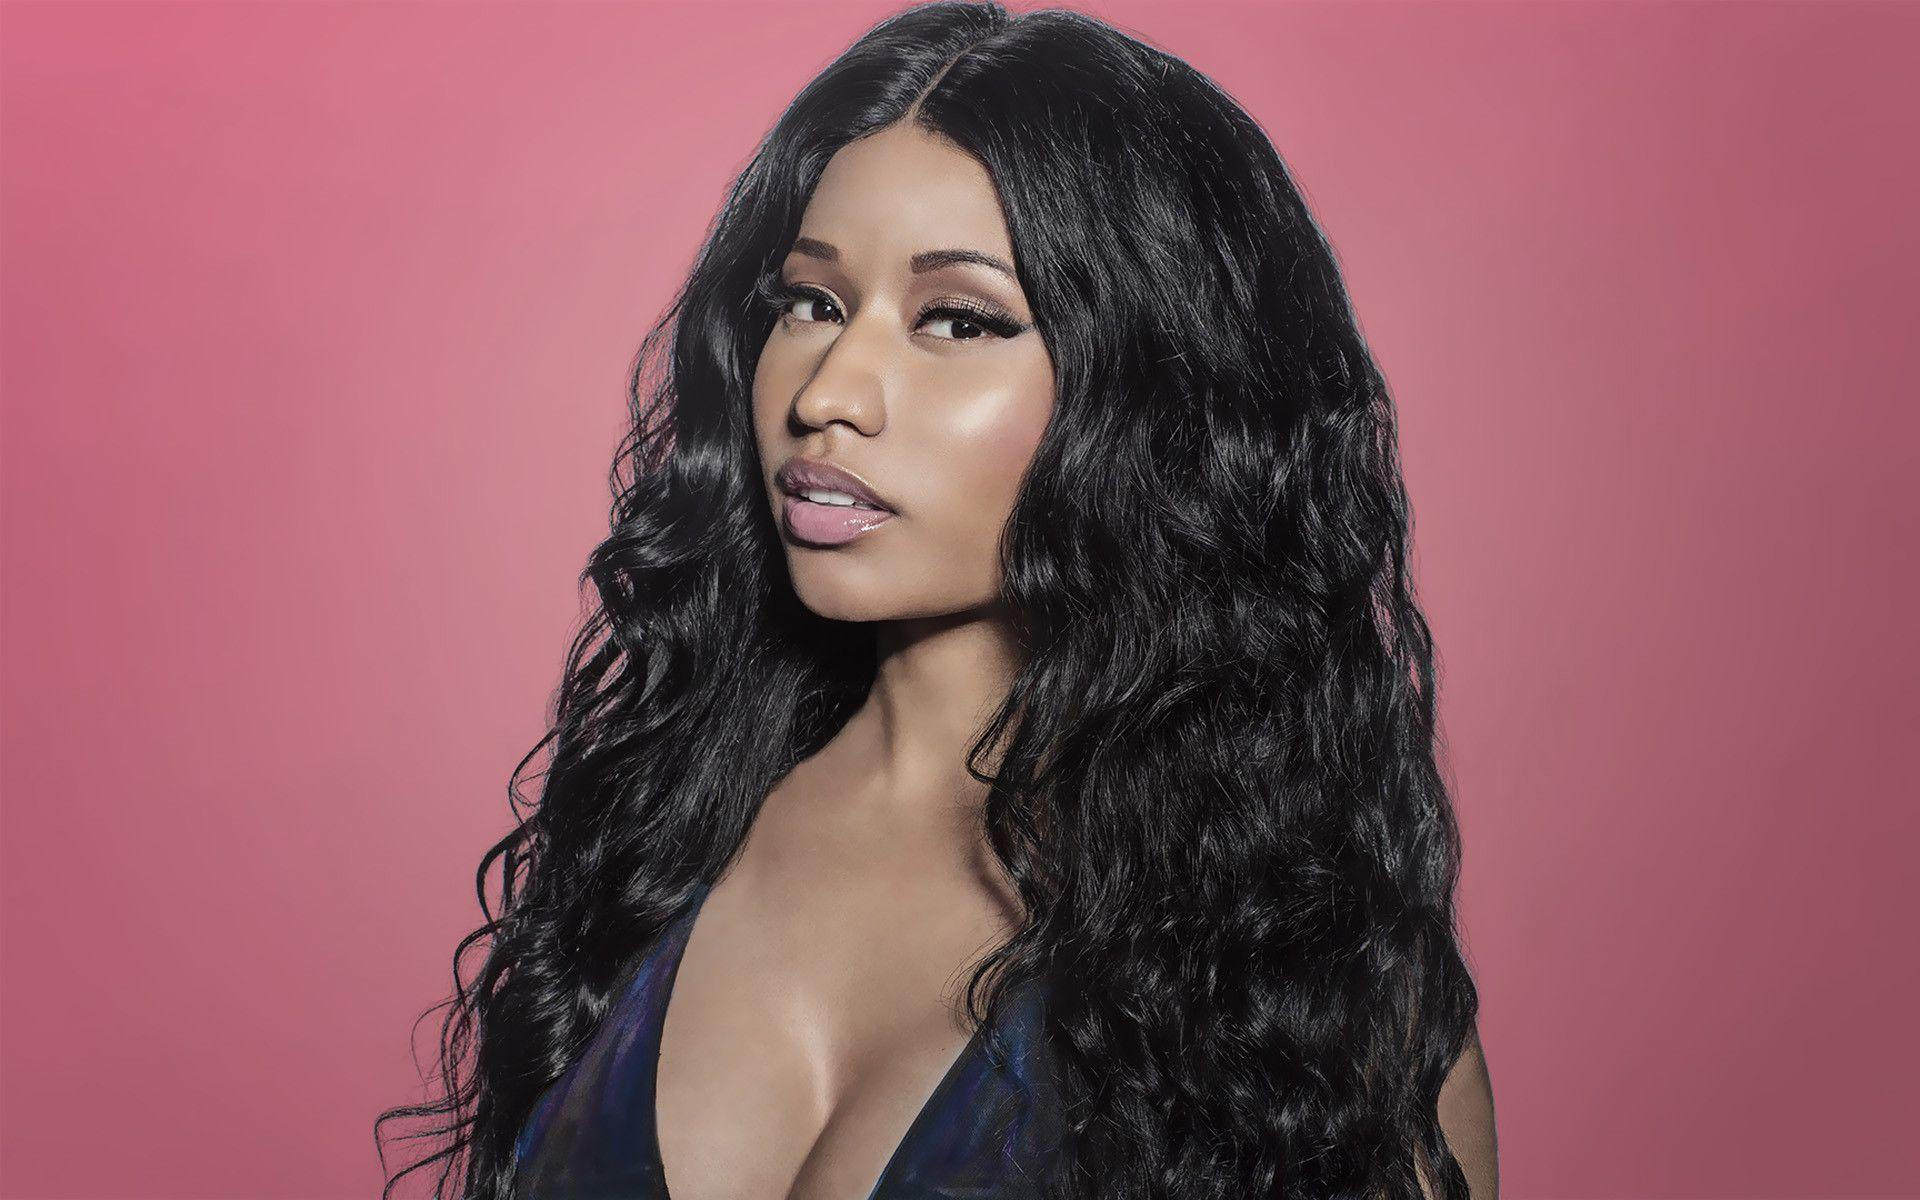 Nicki minaj 2017 wallpapers wallpaper cave nicki minaj wallpapers images photos pictures backgrounds voltagebd Image collections